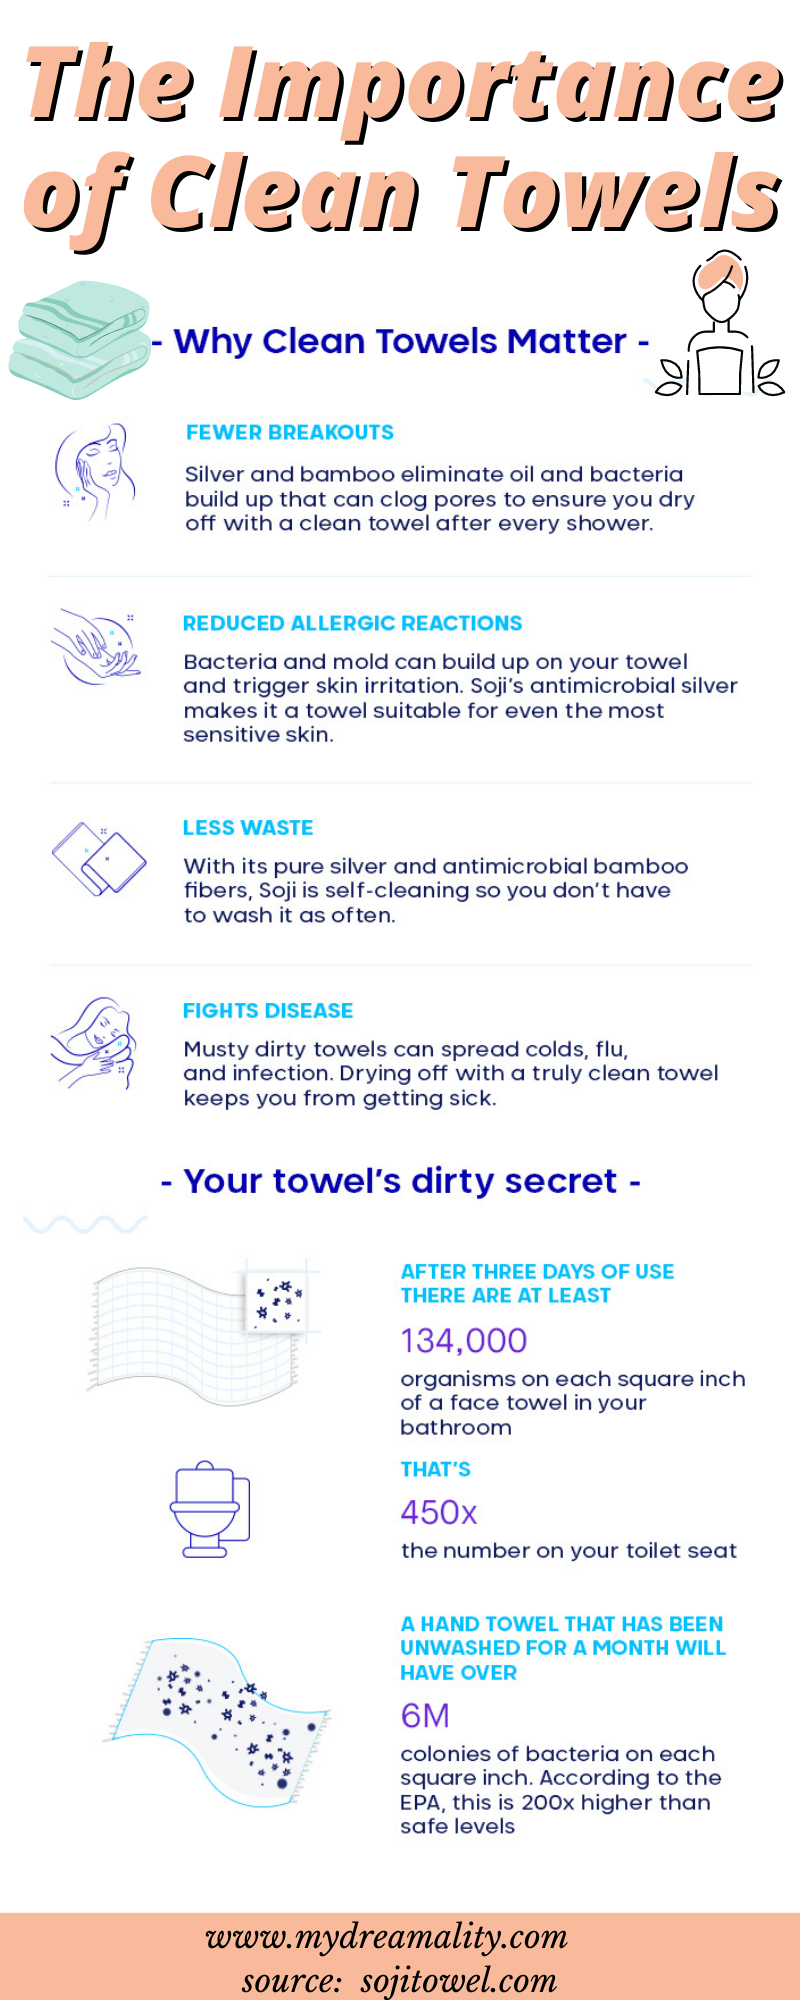 The Importance of Clean Towels infographic